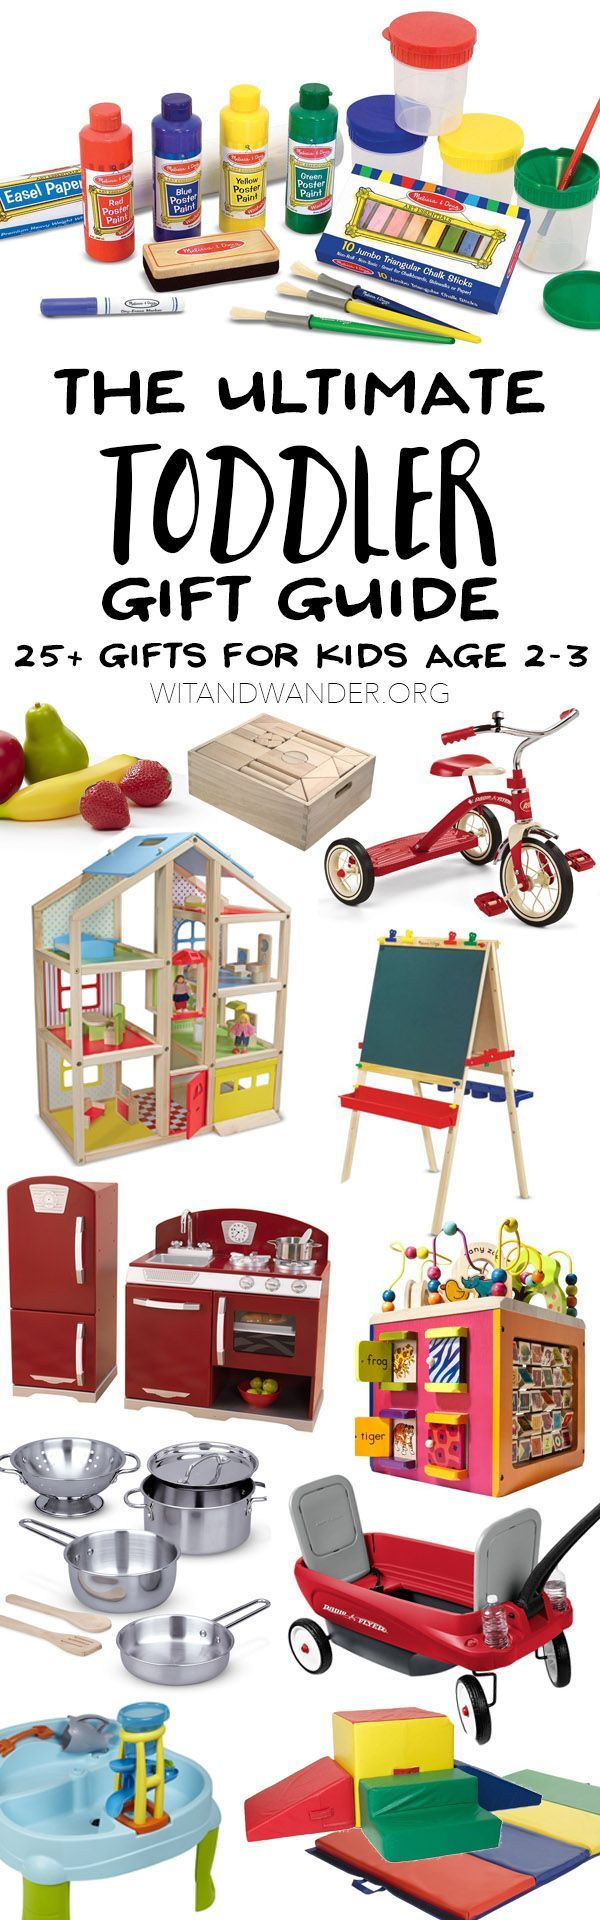 The ULTIMATE Gift Guide for Toddlers! 25+ gifts for kids ages 2-3 that will encourage imagination and creative play. No batteries are required for most of these fabulous gifts that will help your toddler develop important skills.